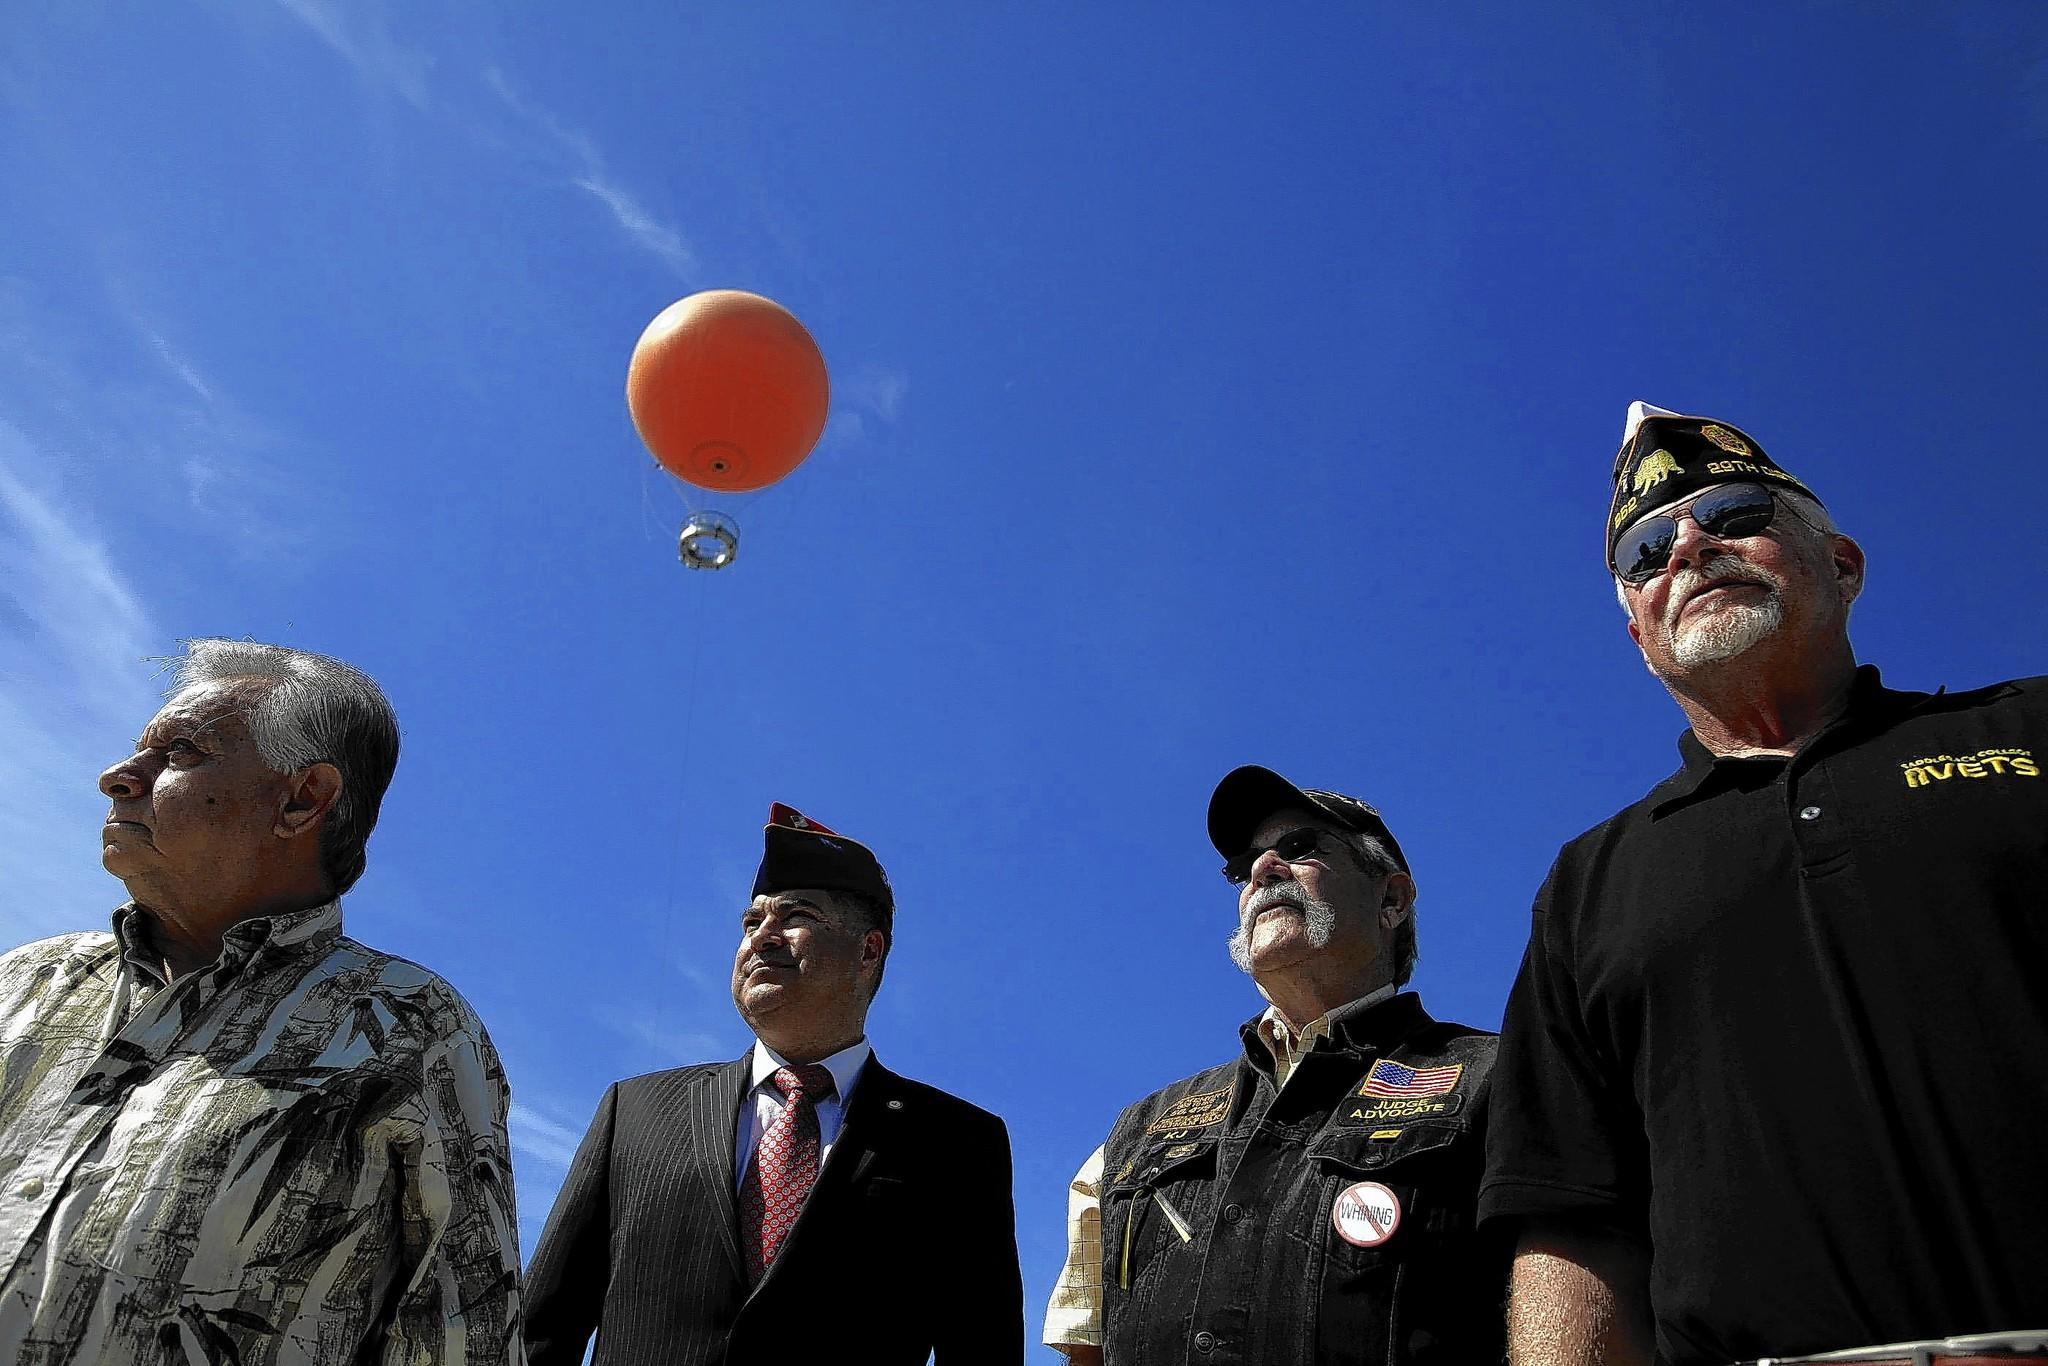 American Legion Chaplain Bill Cook, right, is leading the charge for a veterans cemetery at the former Marine Corps Air Station El Toro. Pictured with him are, from left, Zeke Hernandez, Alex Diaz and Ken Jackson.